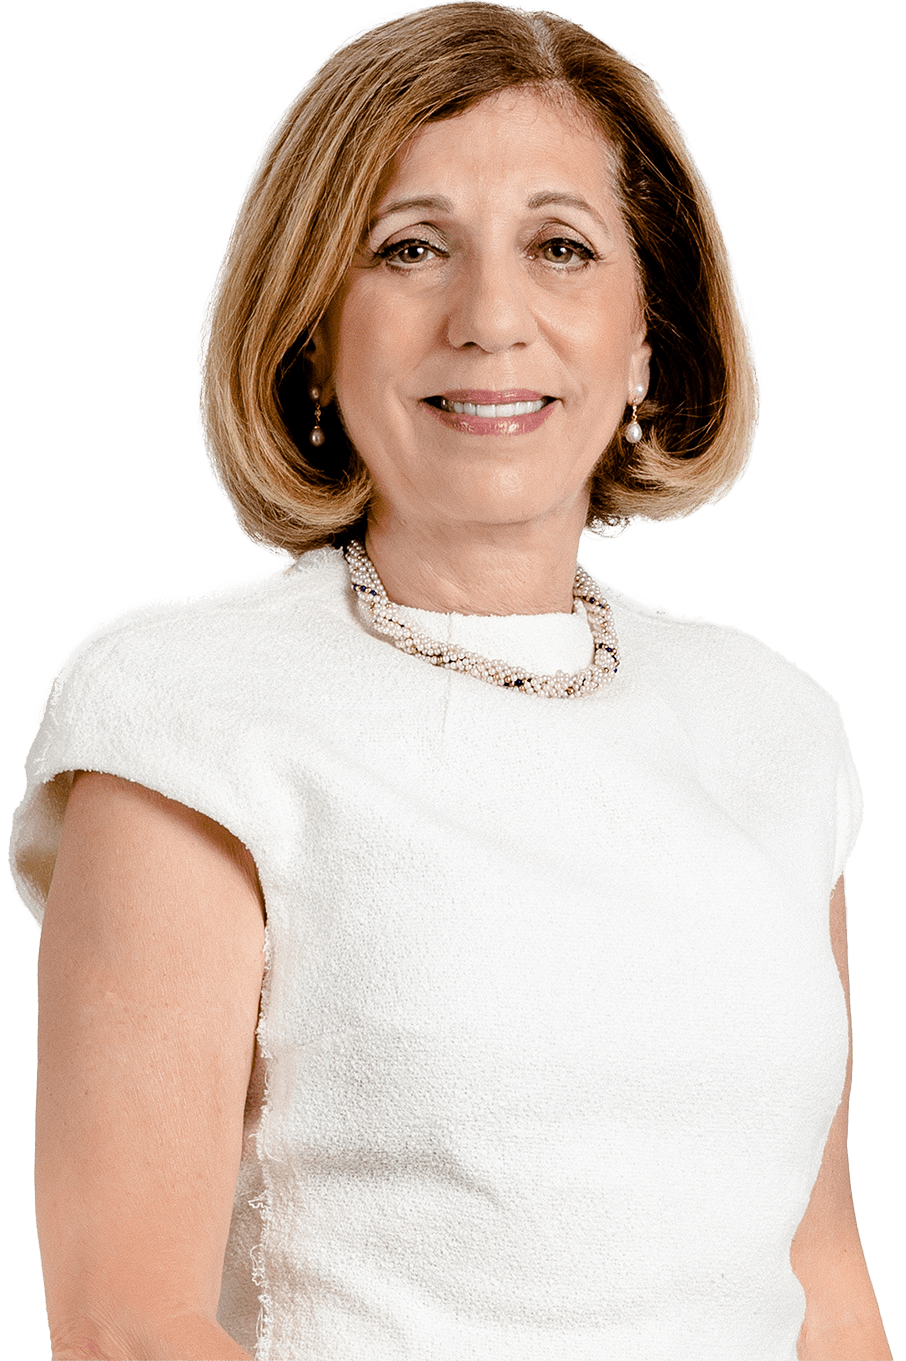 Vote Barbara Bry for Mayor